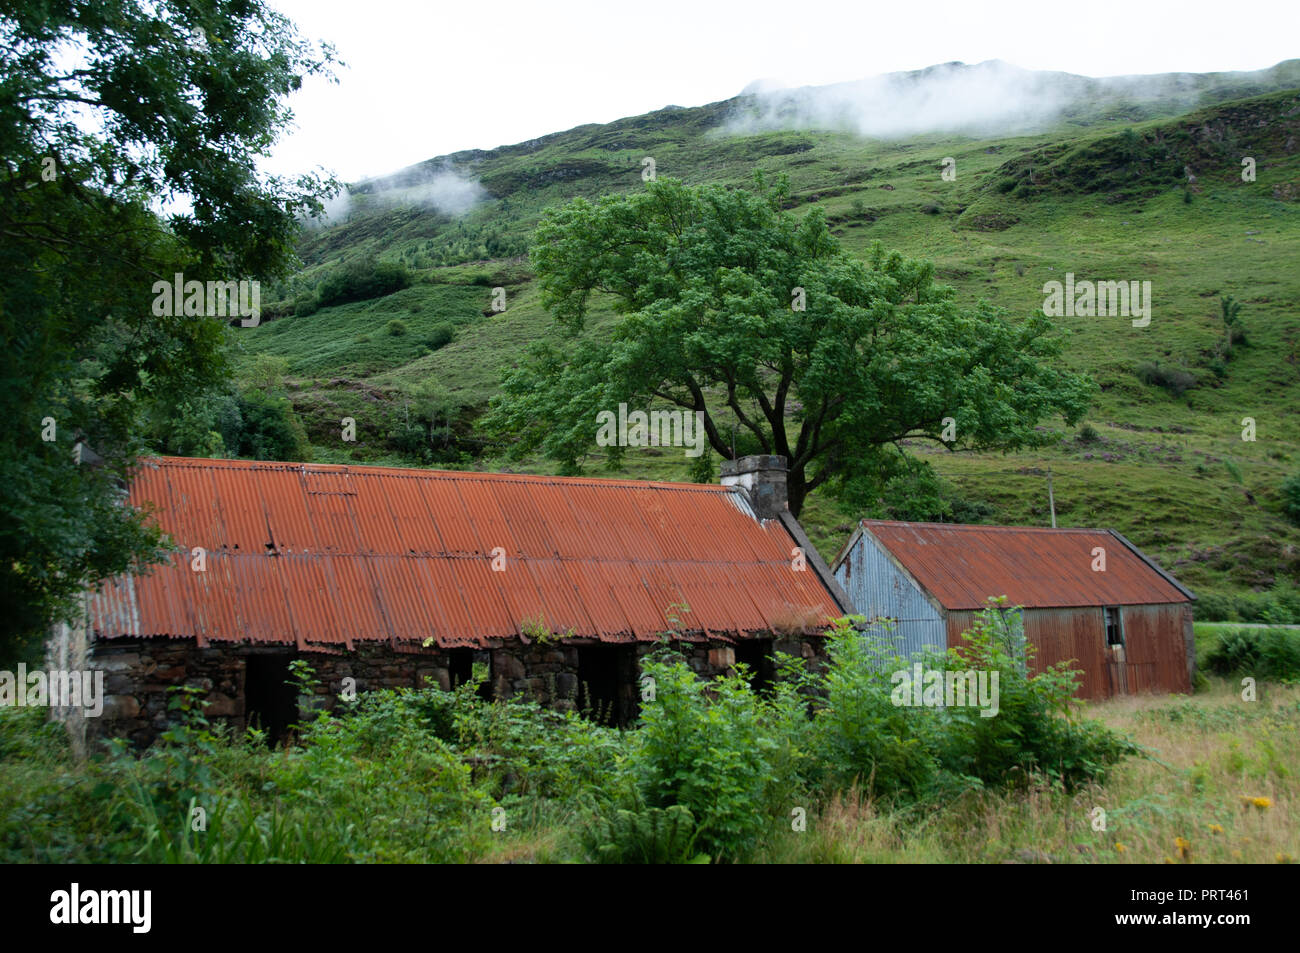 Feeling of age, timelessness and neglect through rusty orange corrugated iron roofs against the bright green foliage, trees and hills of Scotland - Stock Image